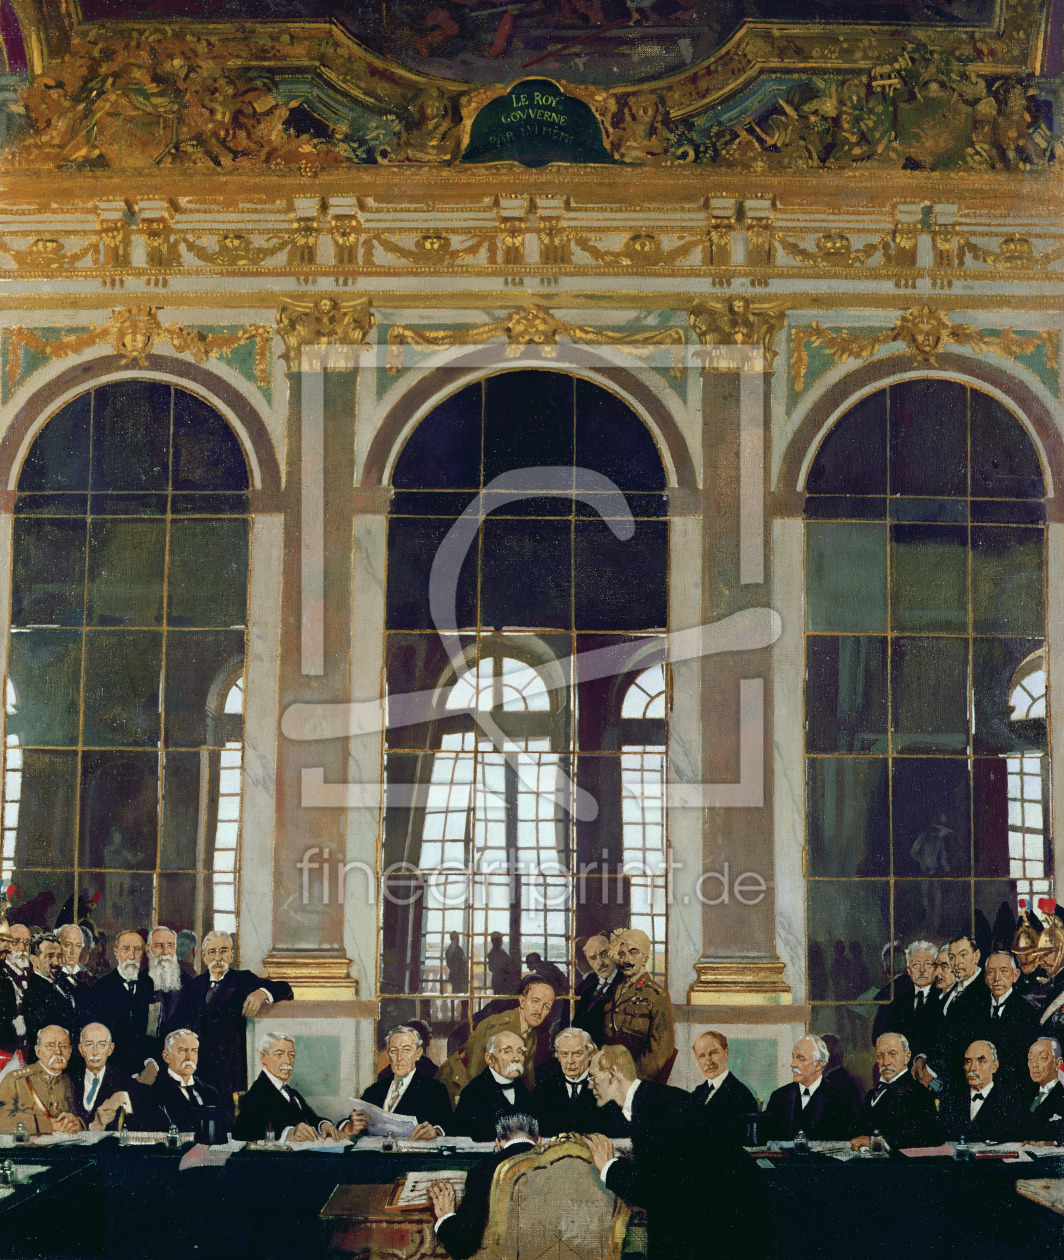 Bild-Nr.: 31002789 The Signing of Peace in the Hall of Mirrors, Versailles, 28th June 1919, 1919 erstellt von Orpen, Sir William